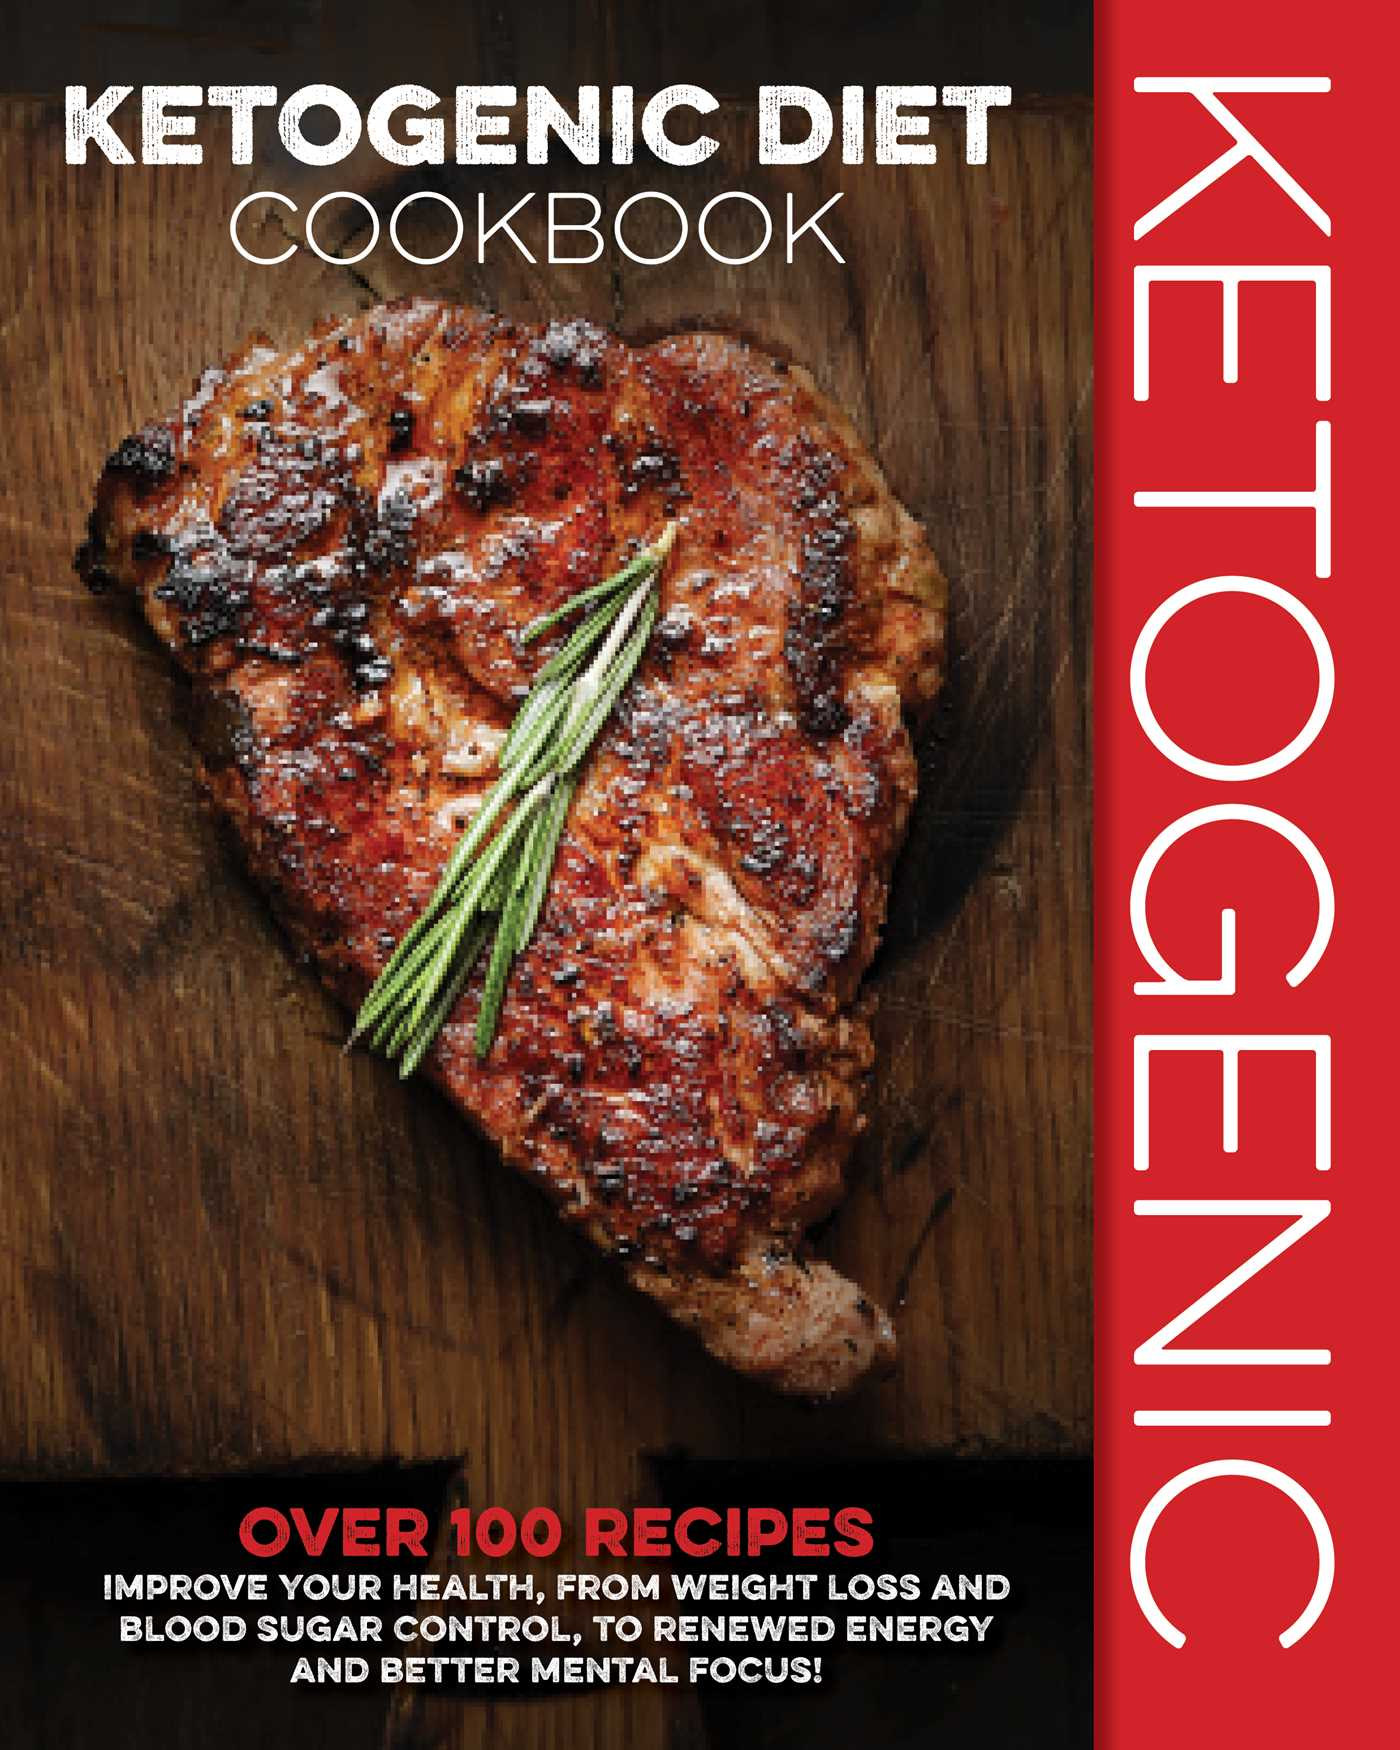 The ketogenic diet cookbook 9781604337945 hr